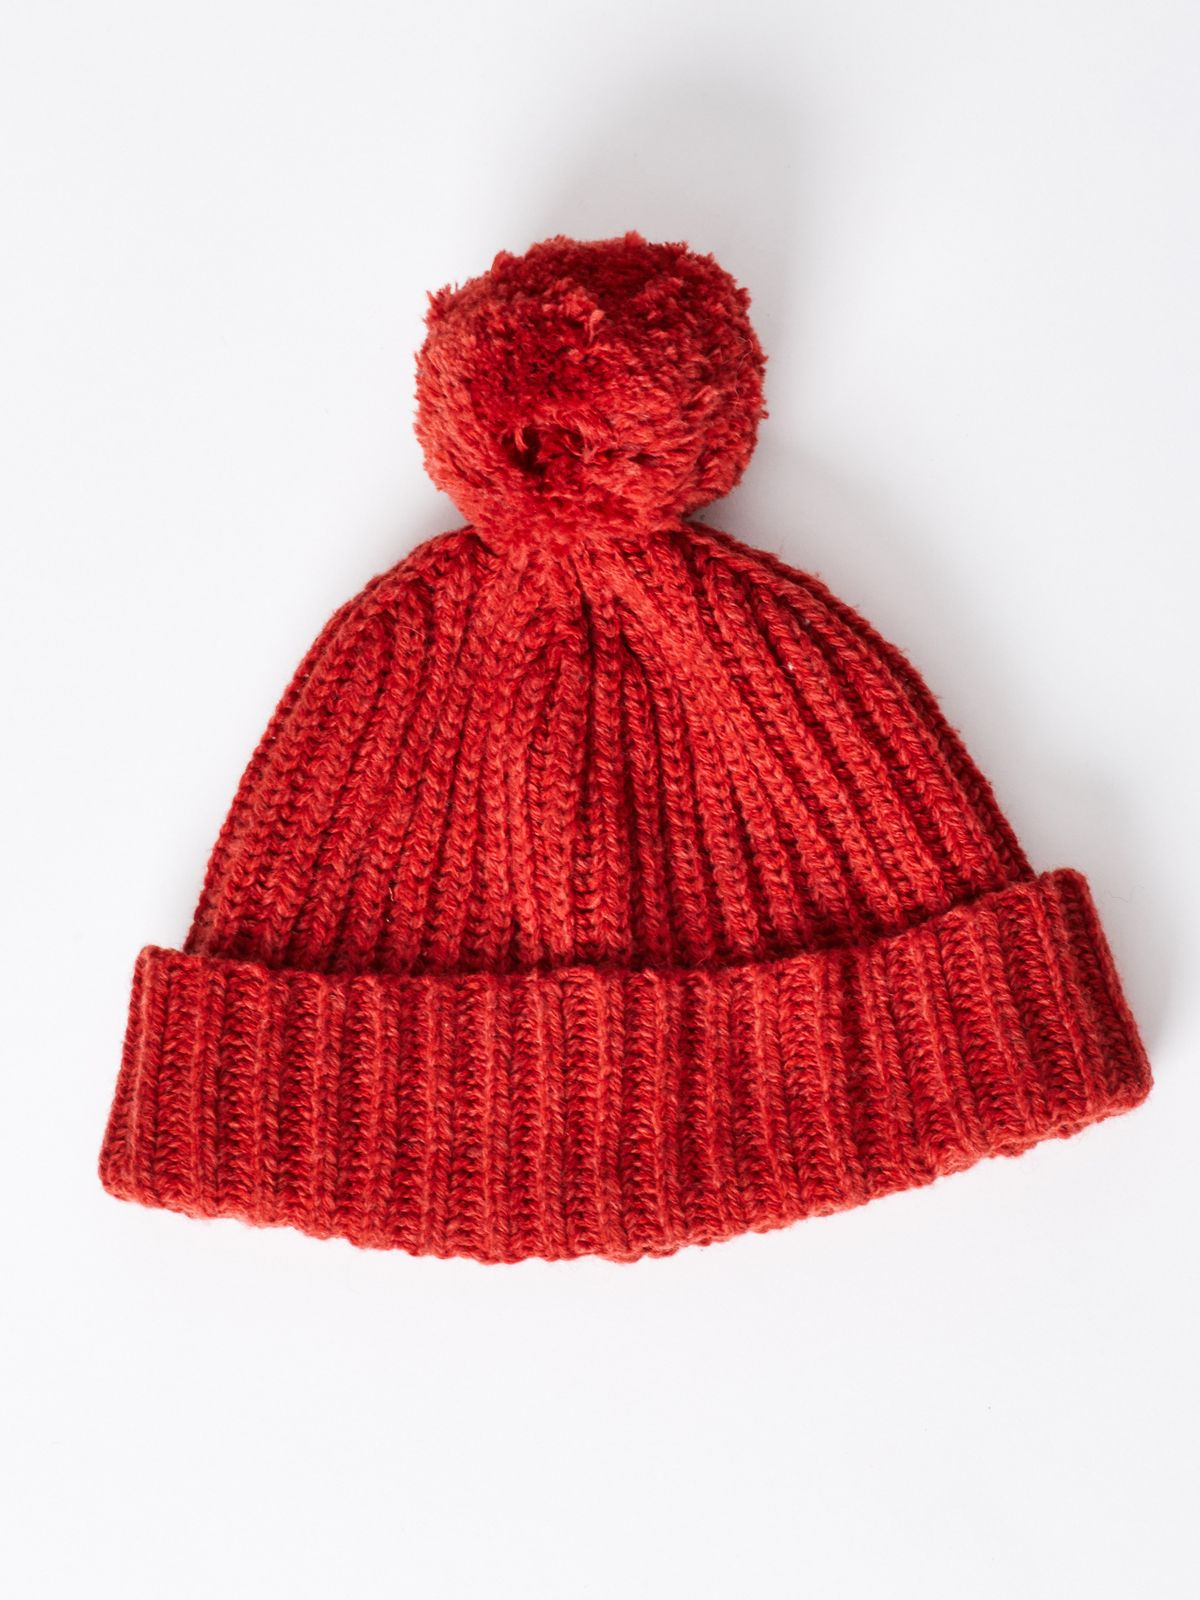 COTTONWOOL BEANIE £39.90 - Anyone who knows me knows come winter, I can be found living in my bobble beanie. (just look at my insta!)This red winter hat is cruelty free and mega cute! It also comes in beige, but I like the red because it brightens up this dreary European weather.Cotton Wool is a great vegan alternative for winterwear.